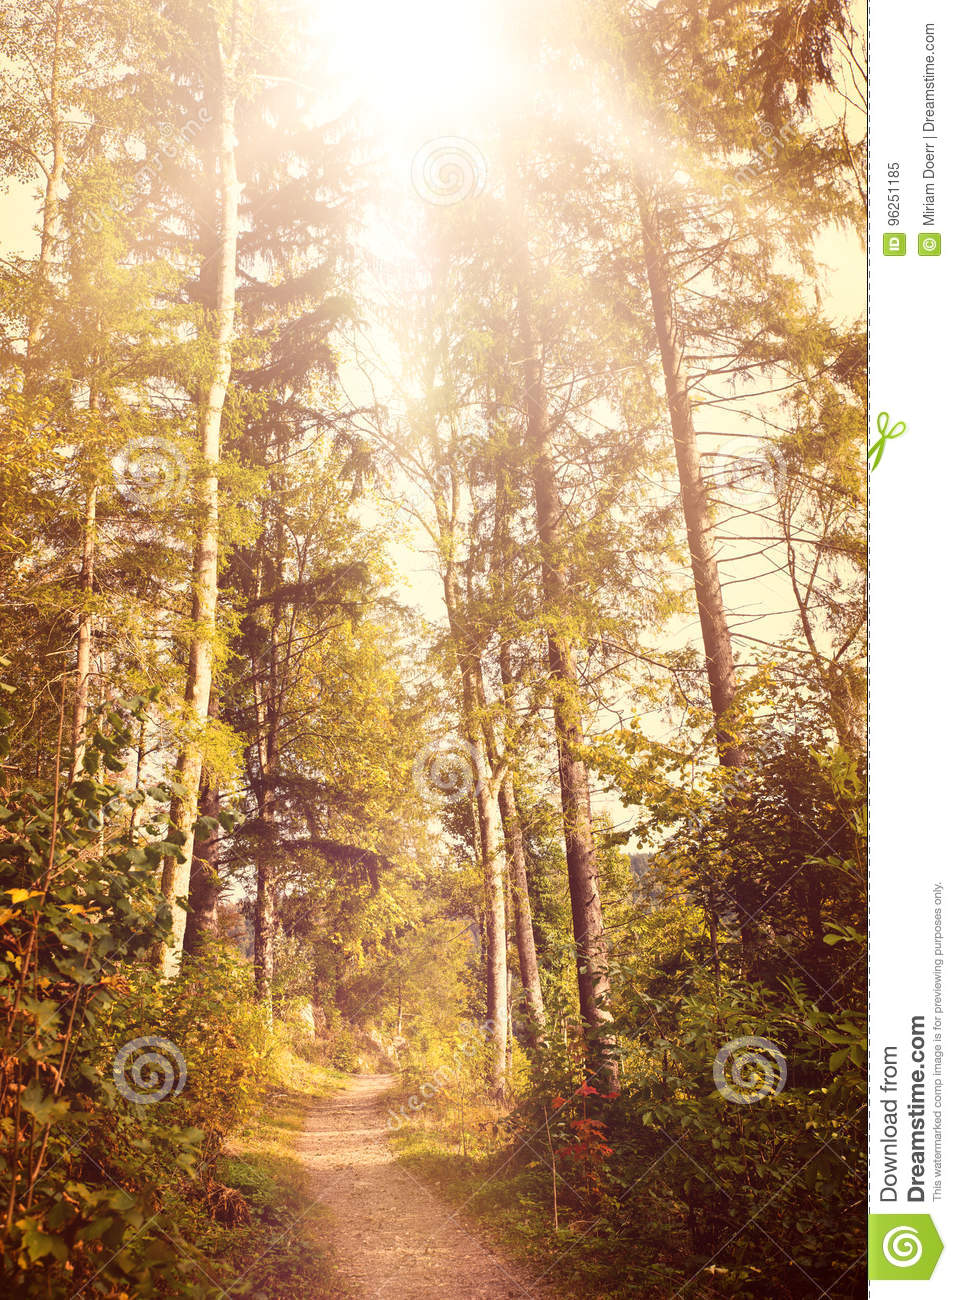 Autumn Season Wallpaper Trail In The Black Forest With